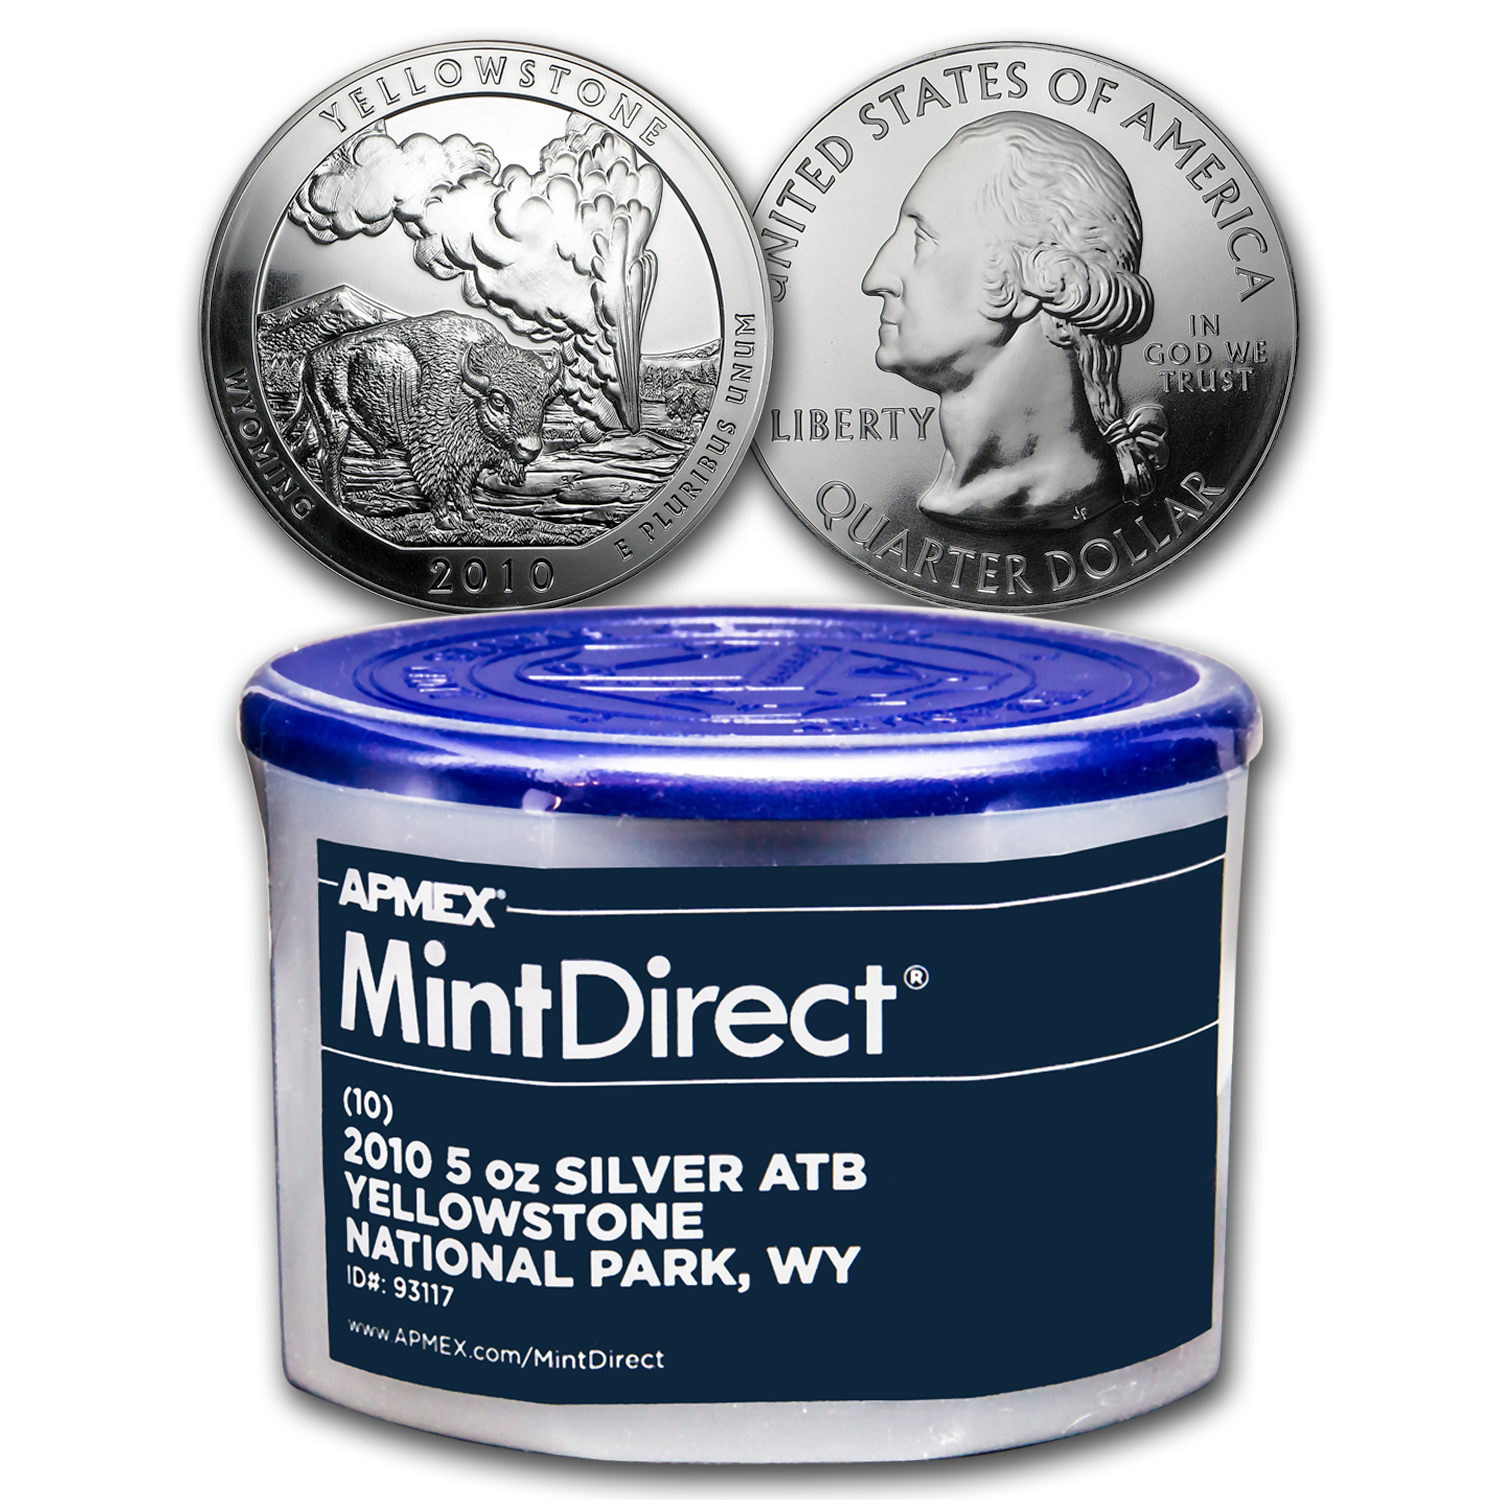 2010 5 oz Silver ATB Yellowstone (10-Coin MintDirect® Tube)